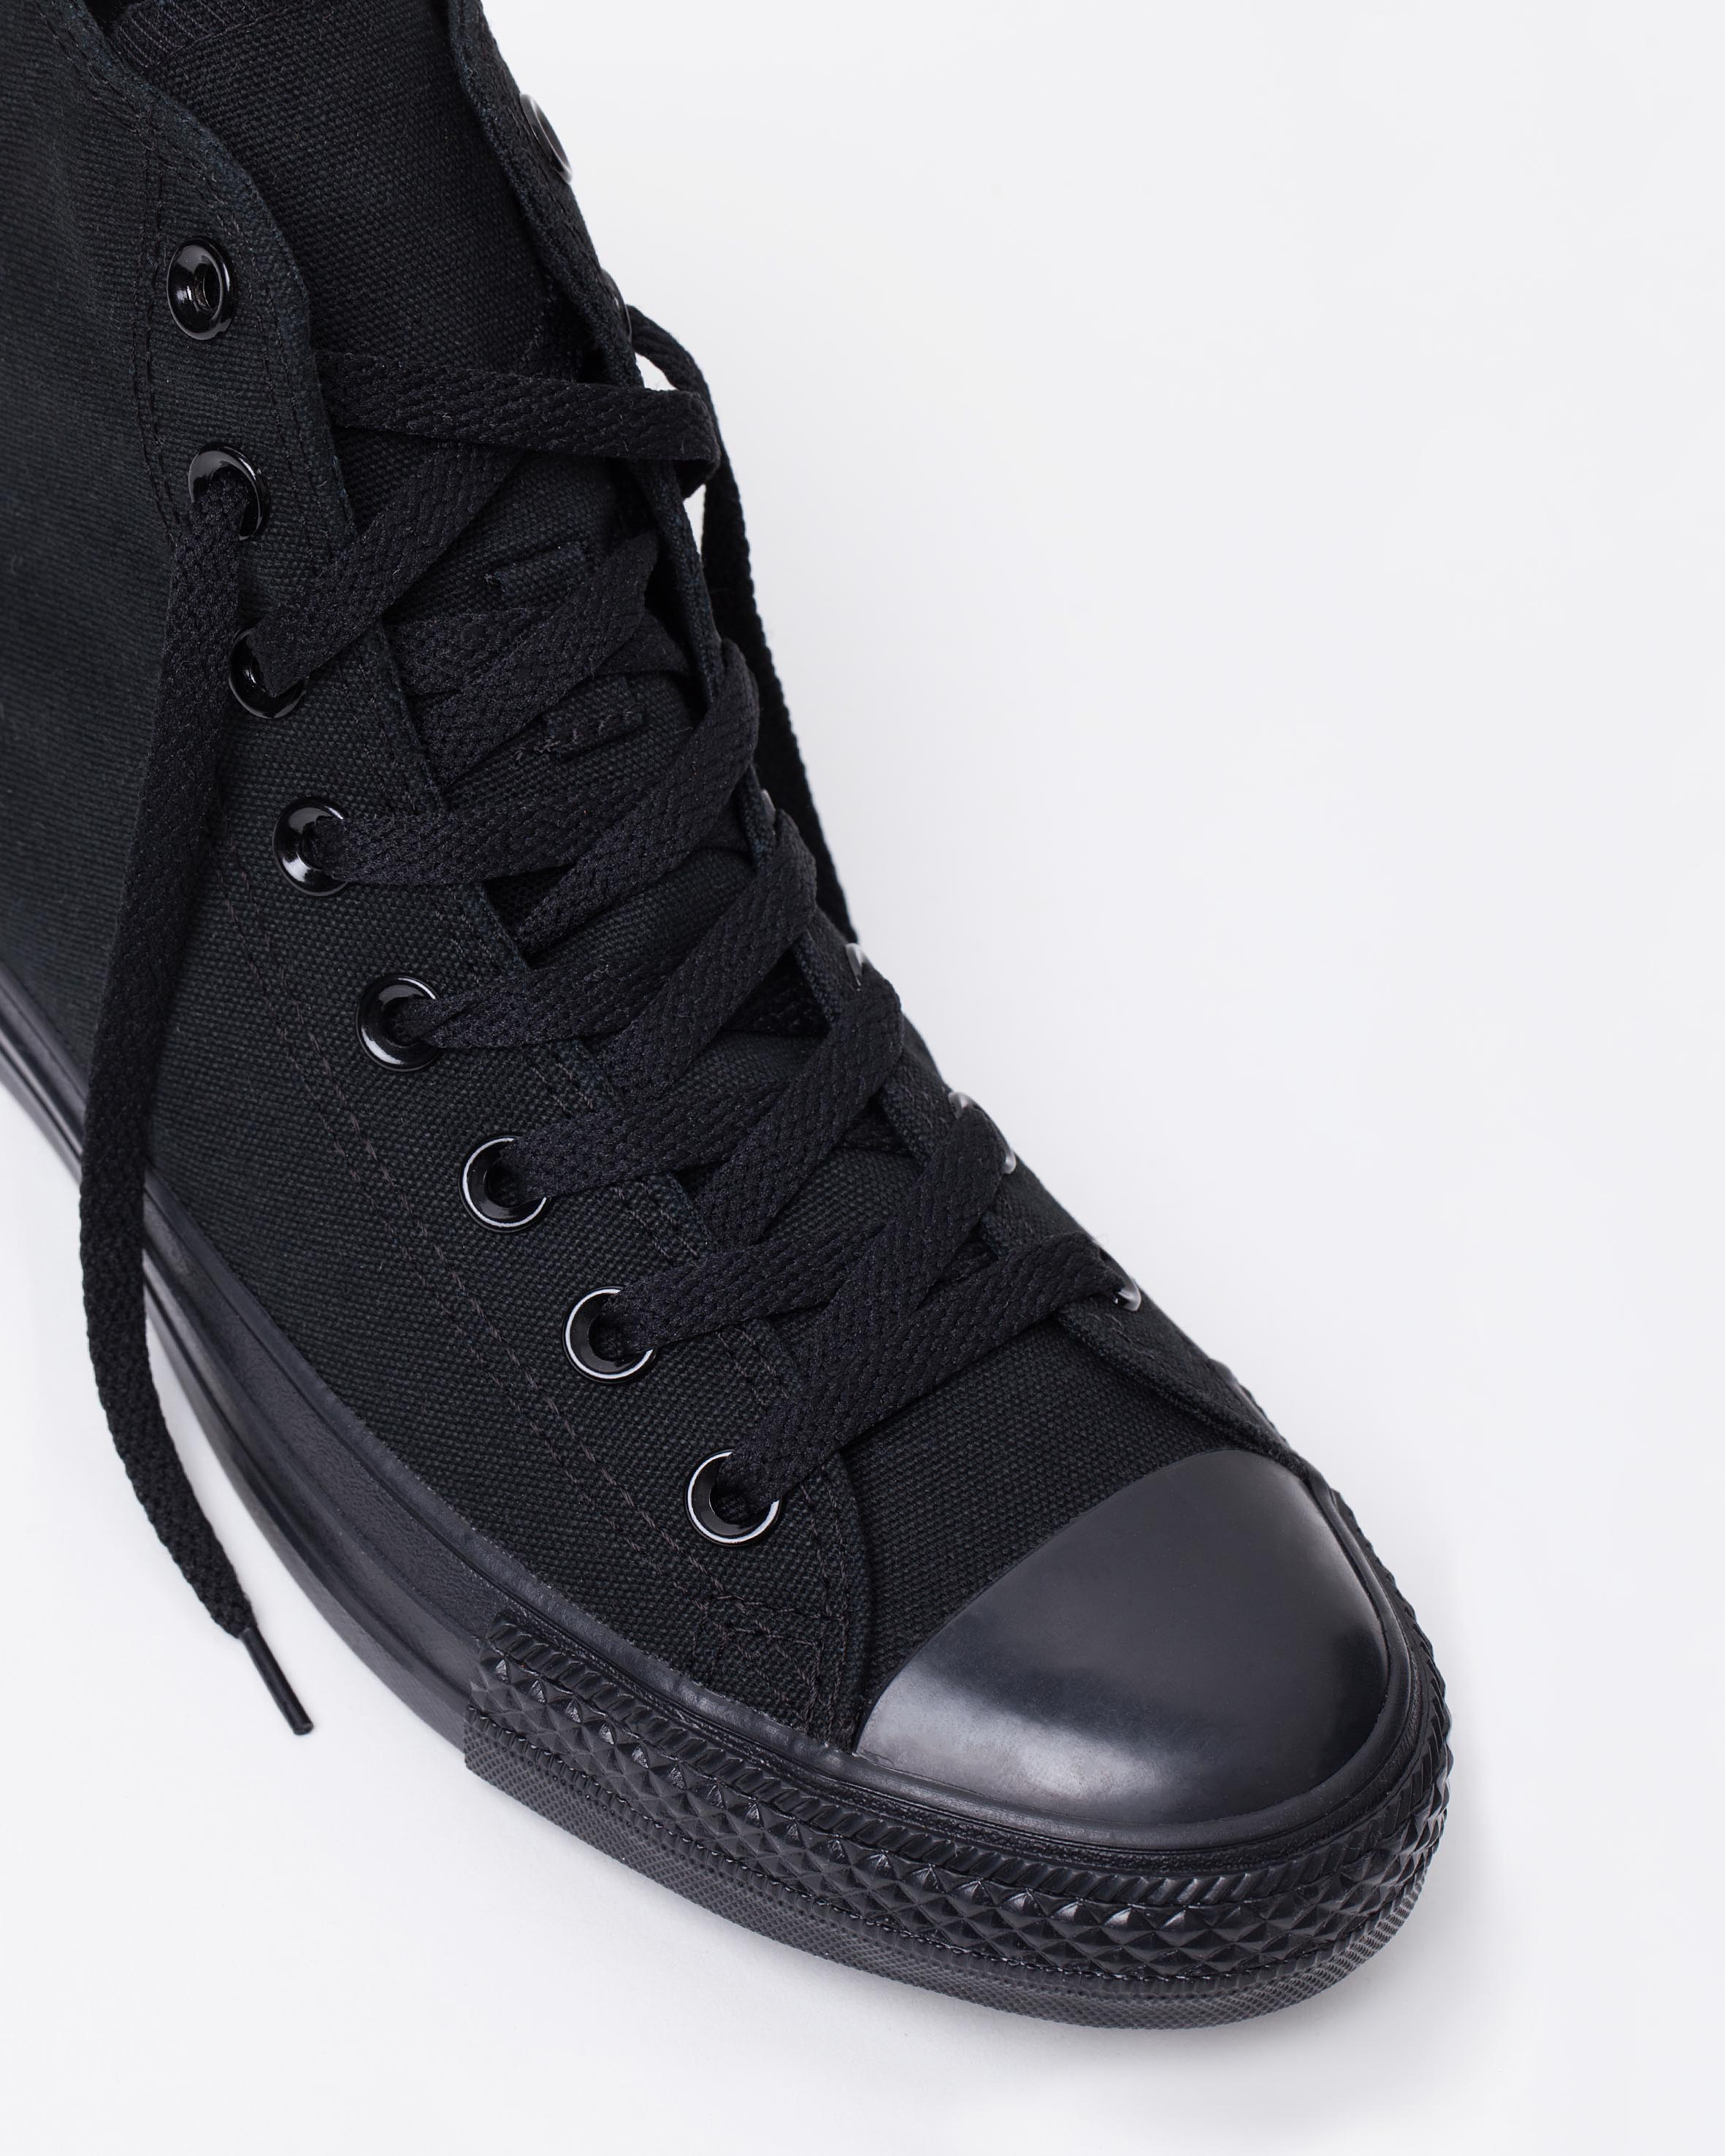 ... coupon converse chuck taylor all star hi womens black monochrome 4  614c0 9584b a6a89137c